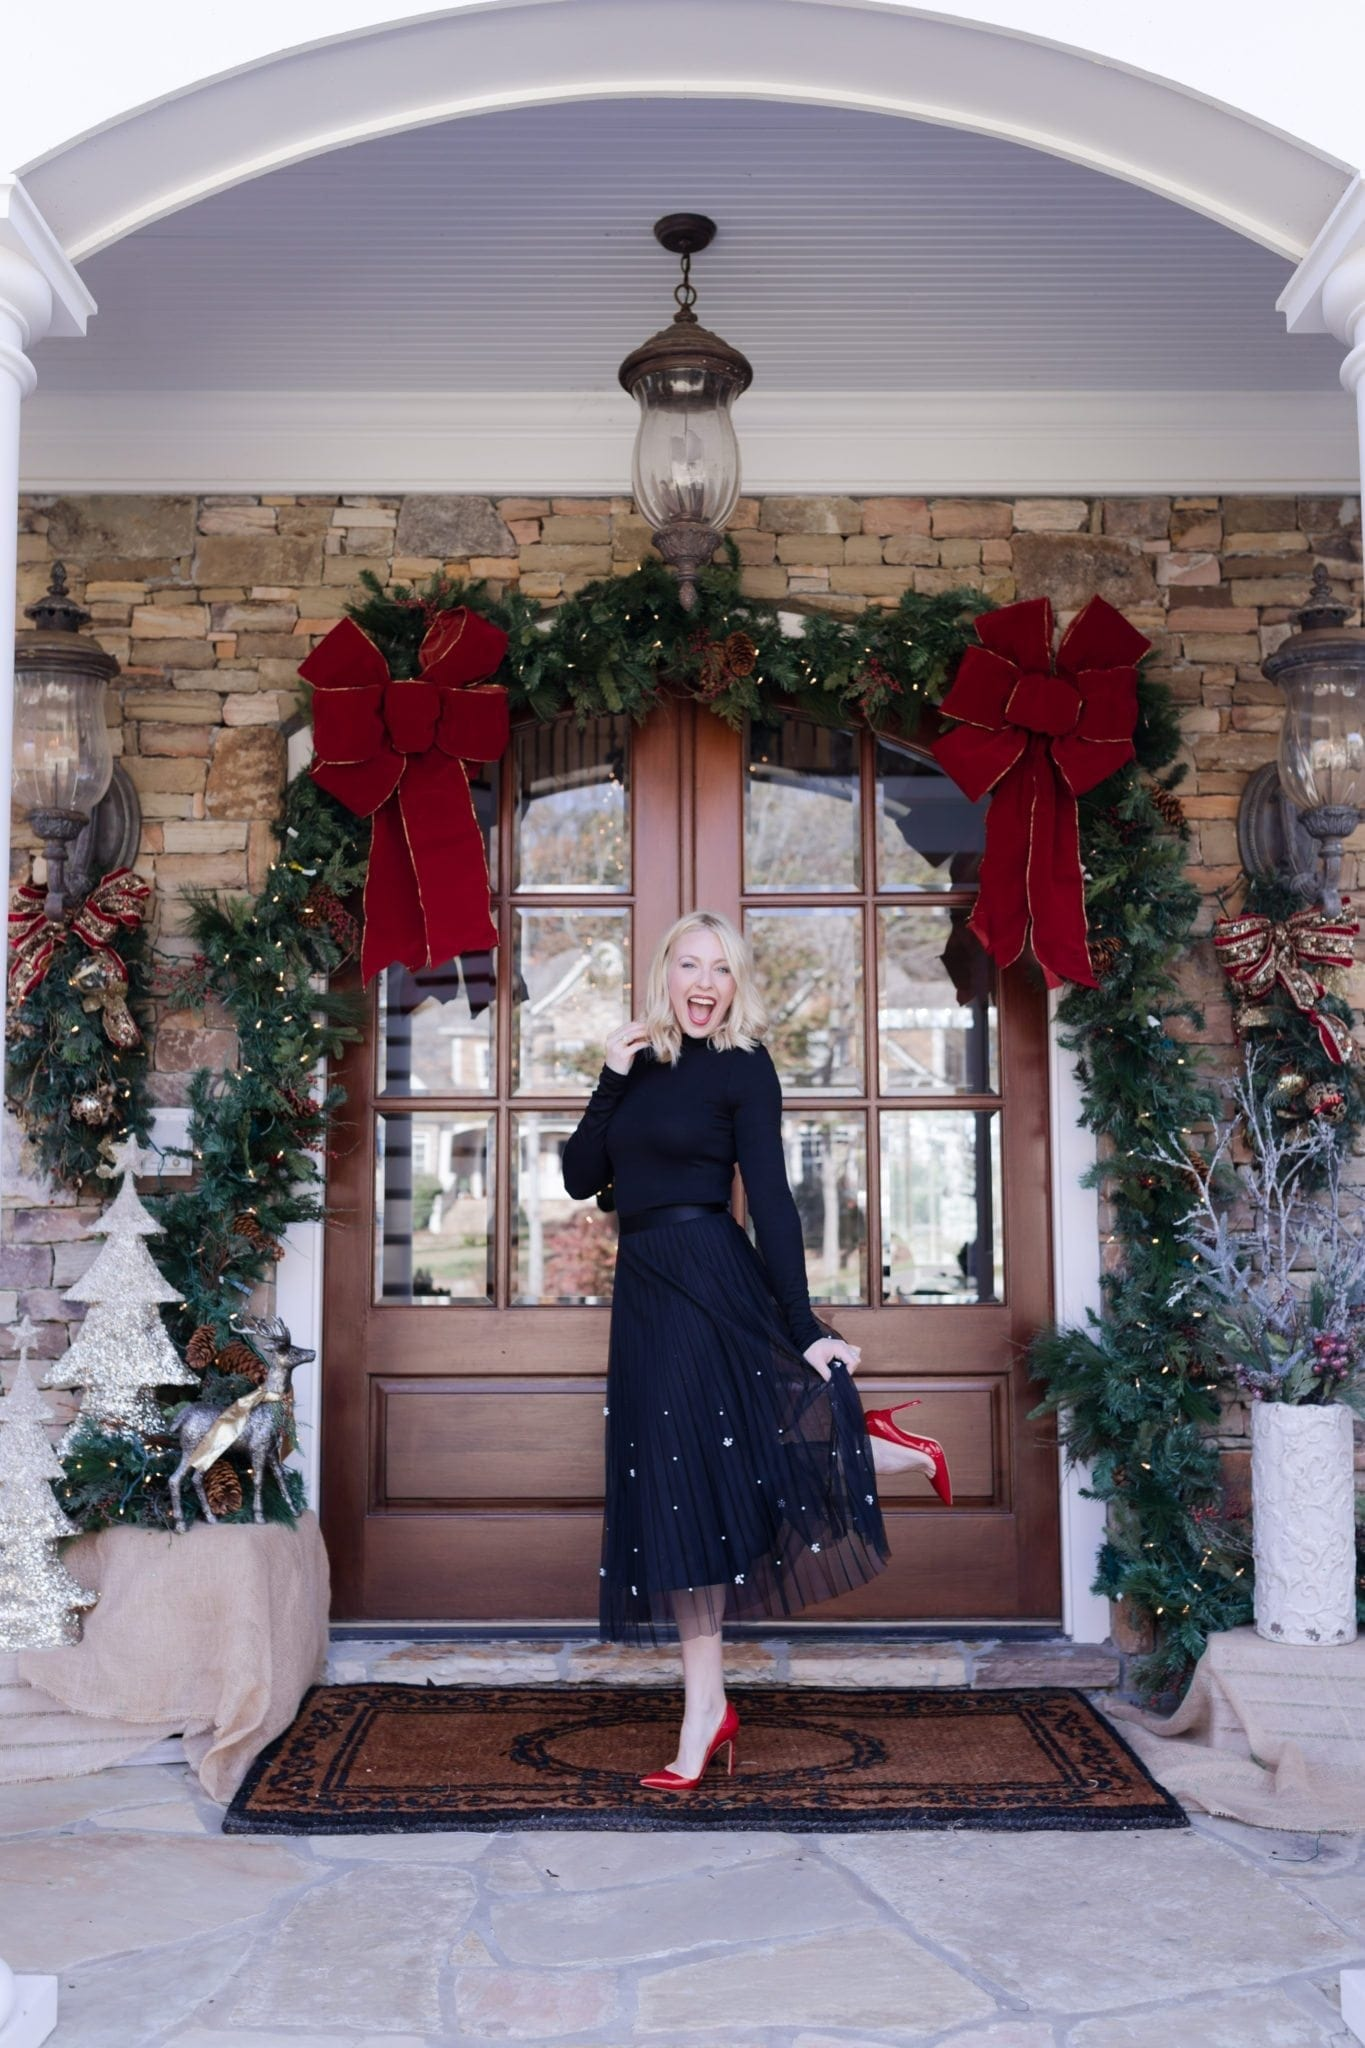 What to wear to dress up Christmas with a pretty special occasion outfit.